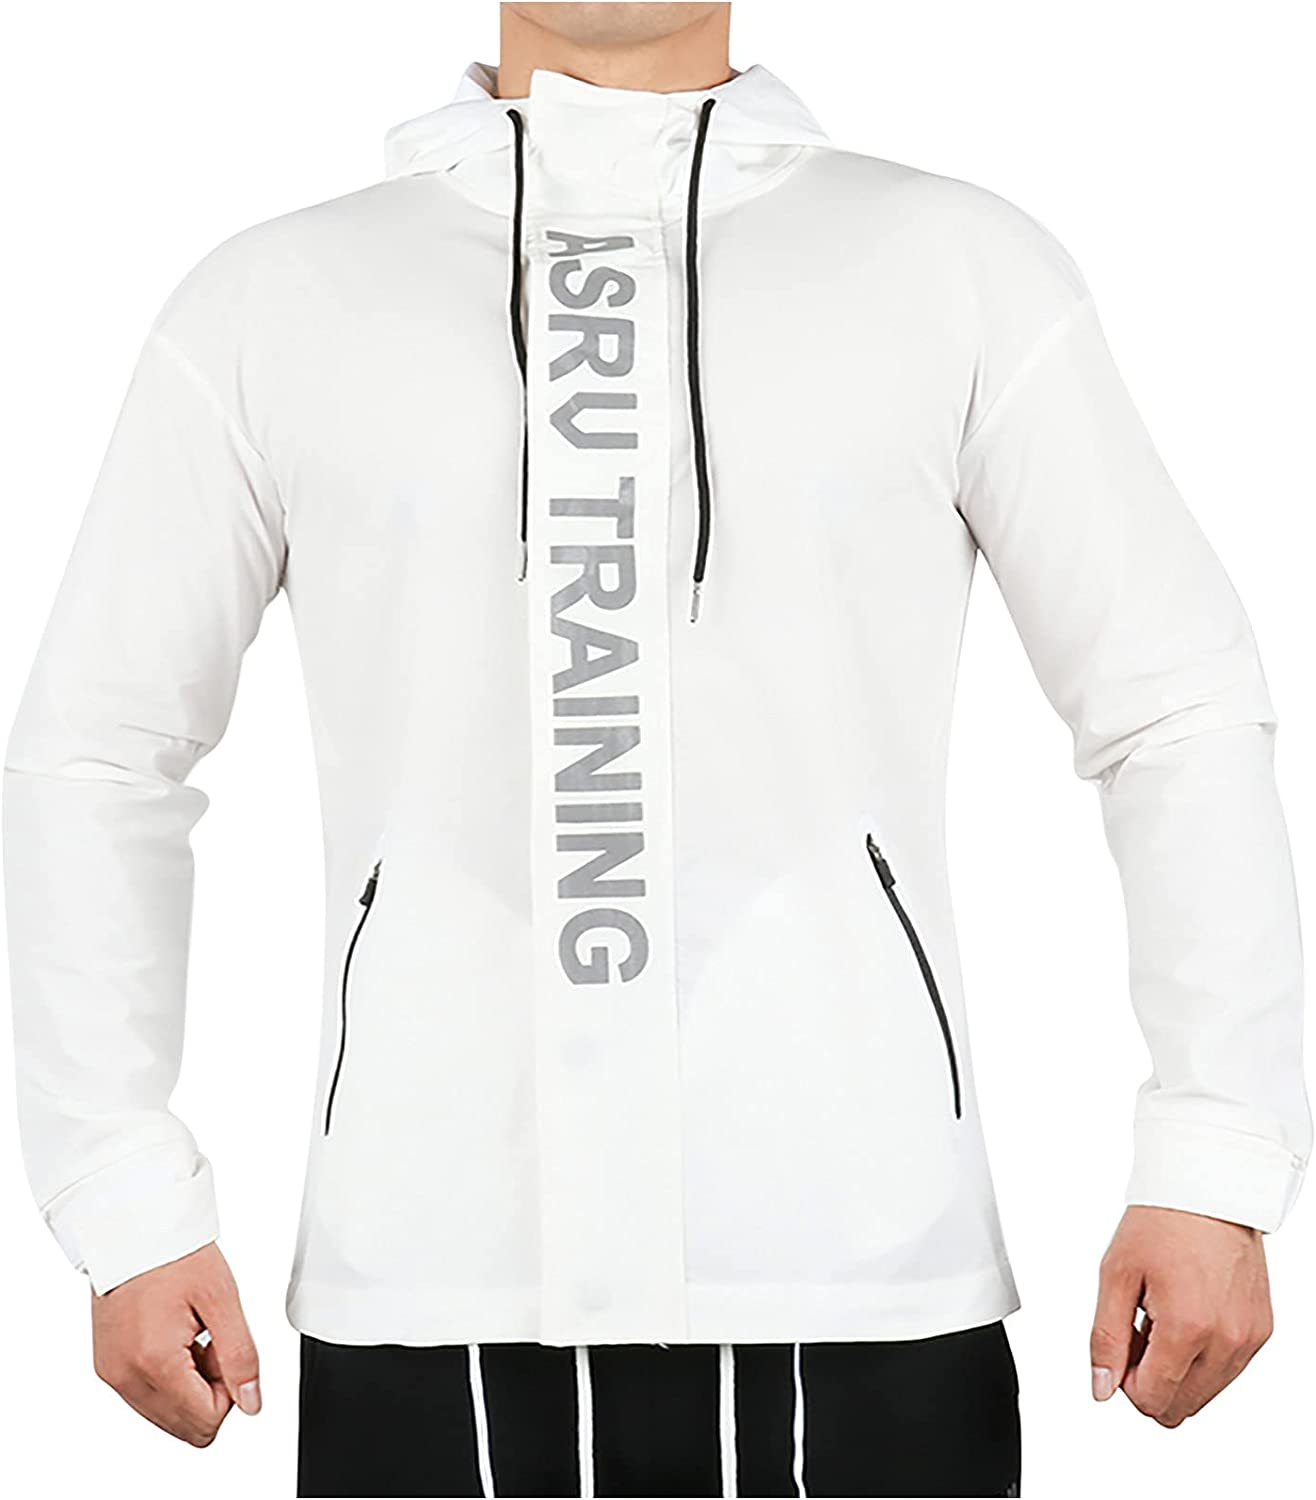 2021 Newly Colorado Springs Mall Brand Cheap Sale Venue Jacket for Men's Long Spor Hooded Outdoor Coat Sleeve